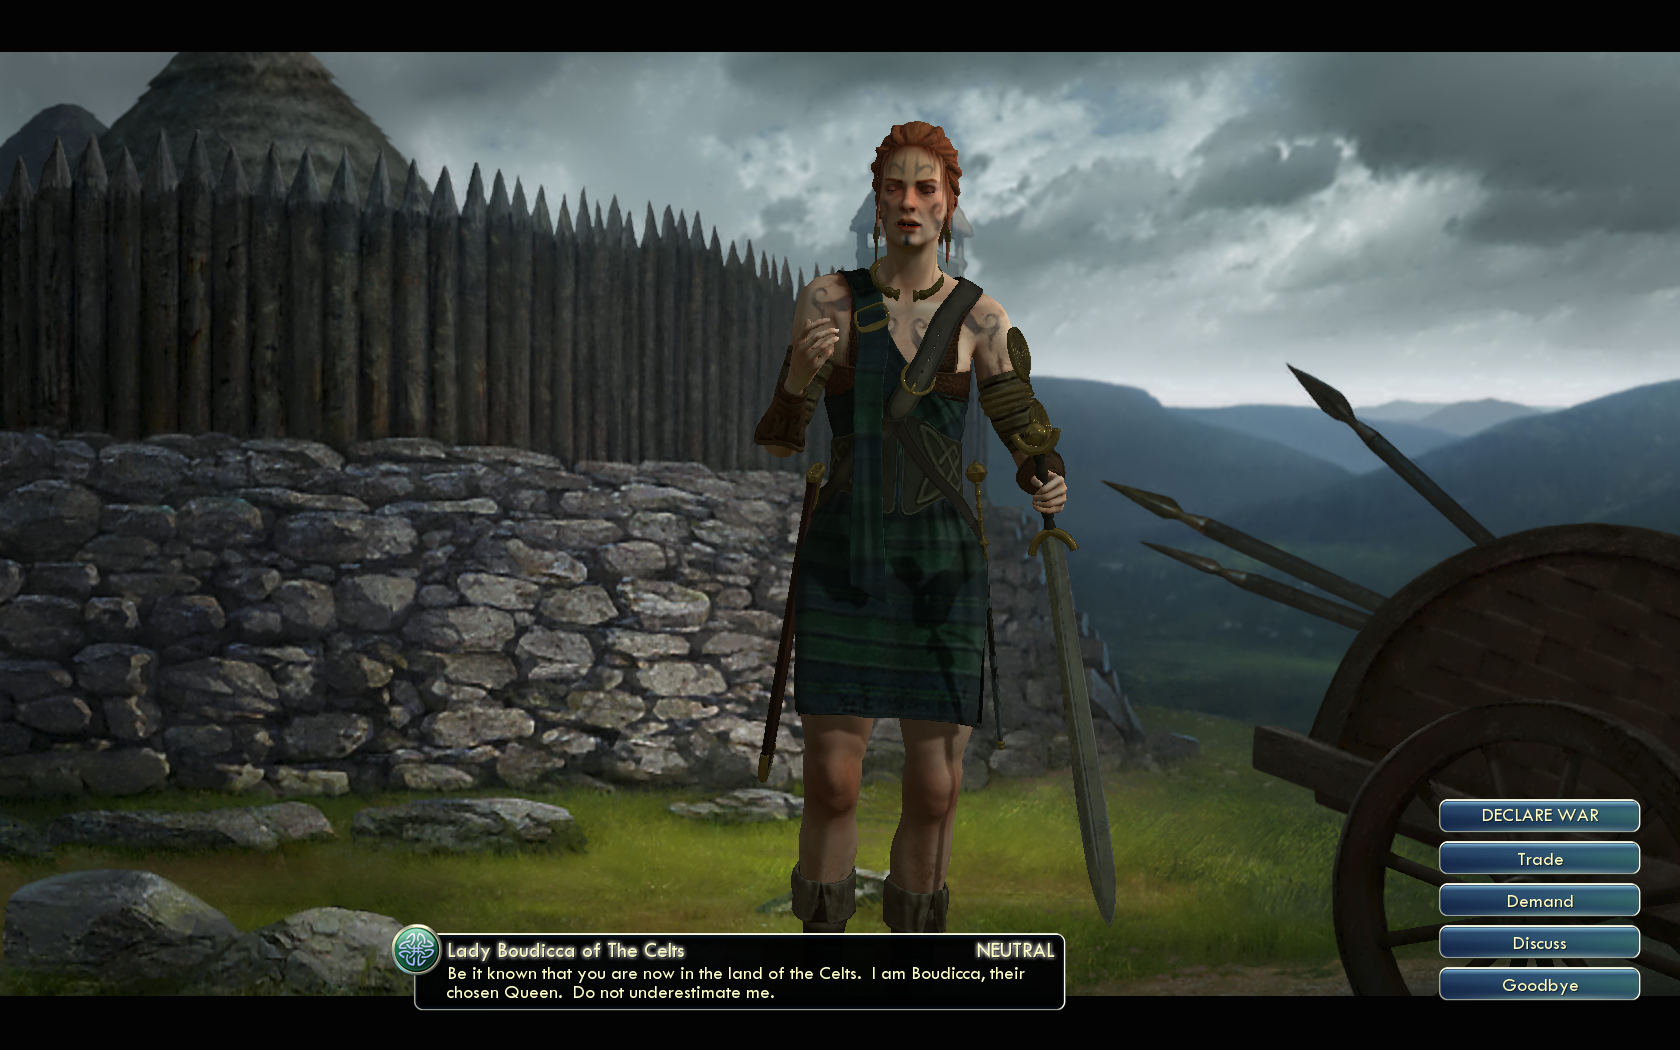 Civilization 5 - against Dave - Meet first other Civ, the Dirty Celts - 3100 BC